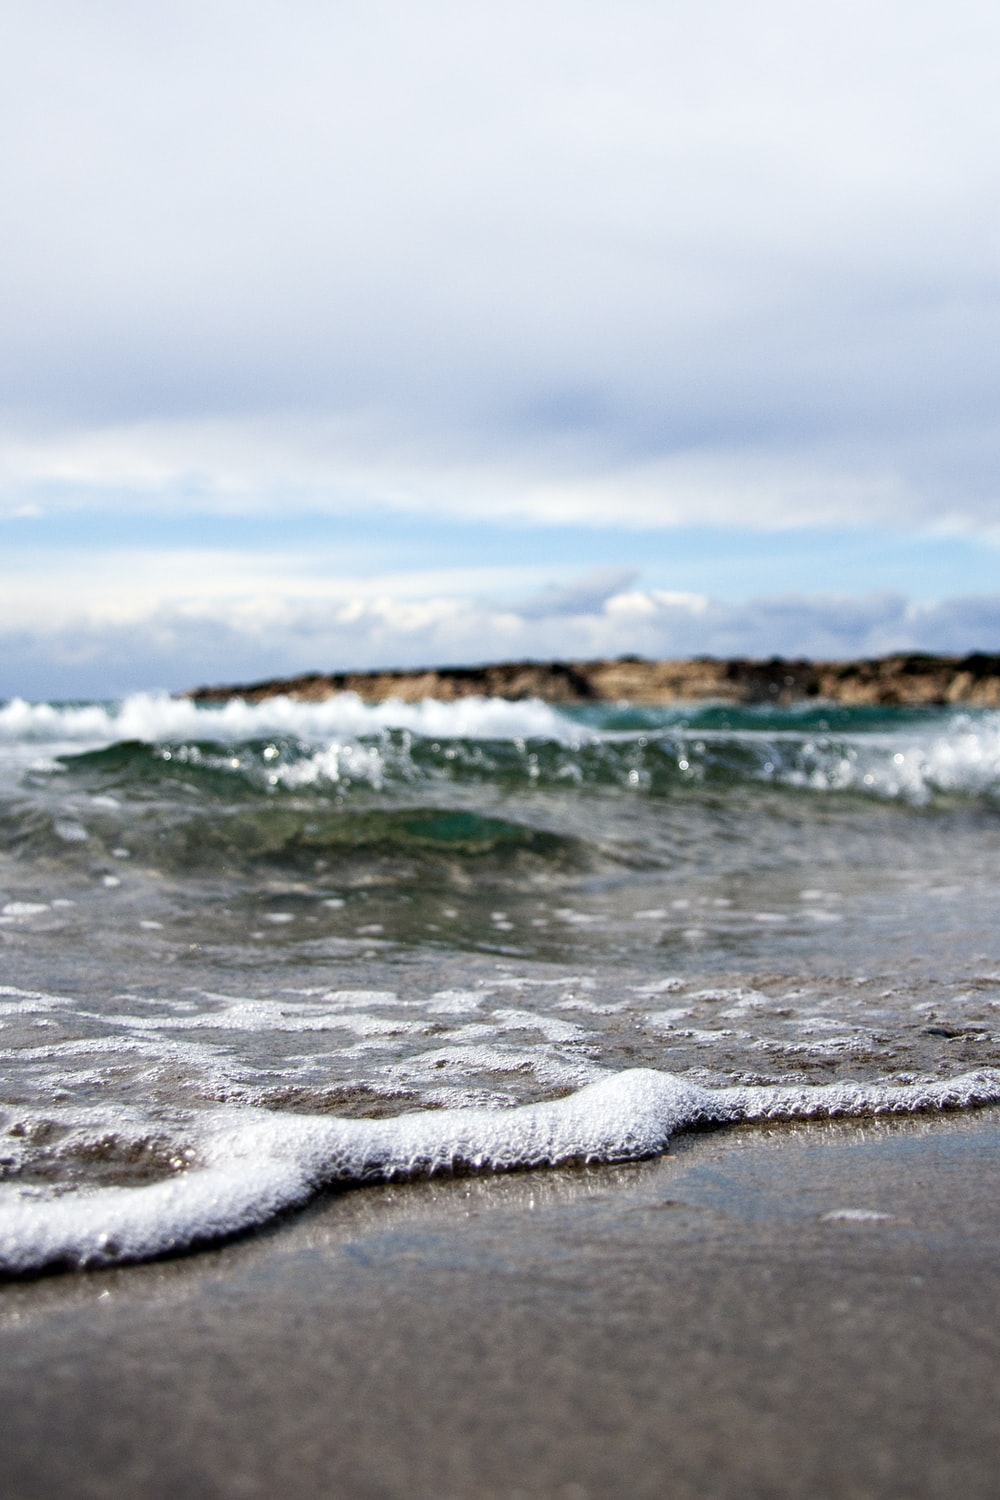 waves under white cloudy sky at daytime